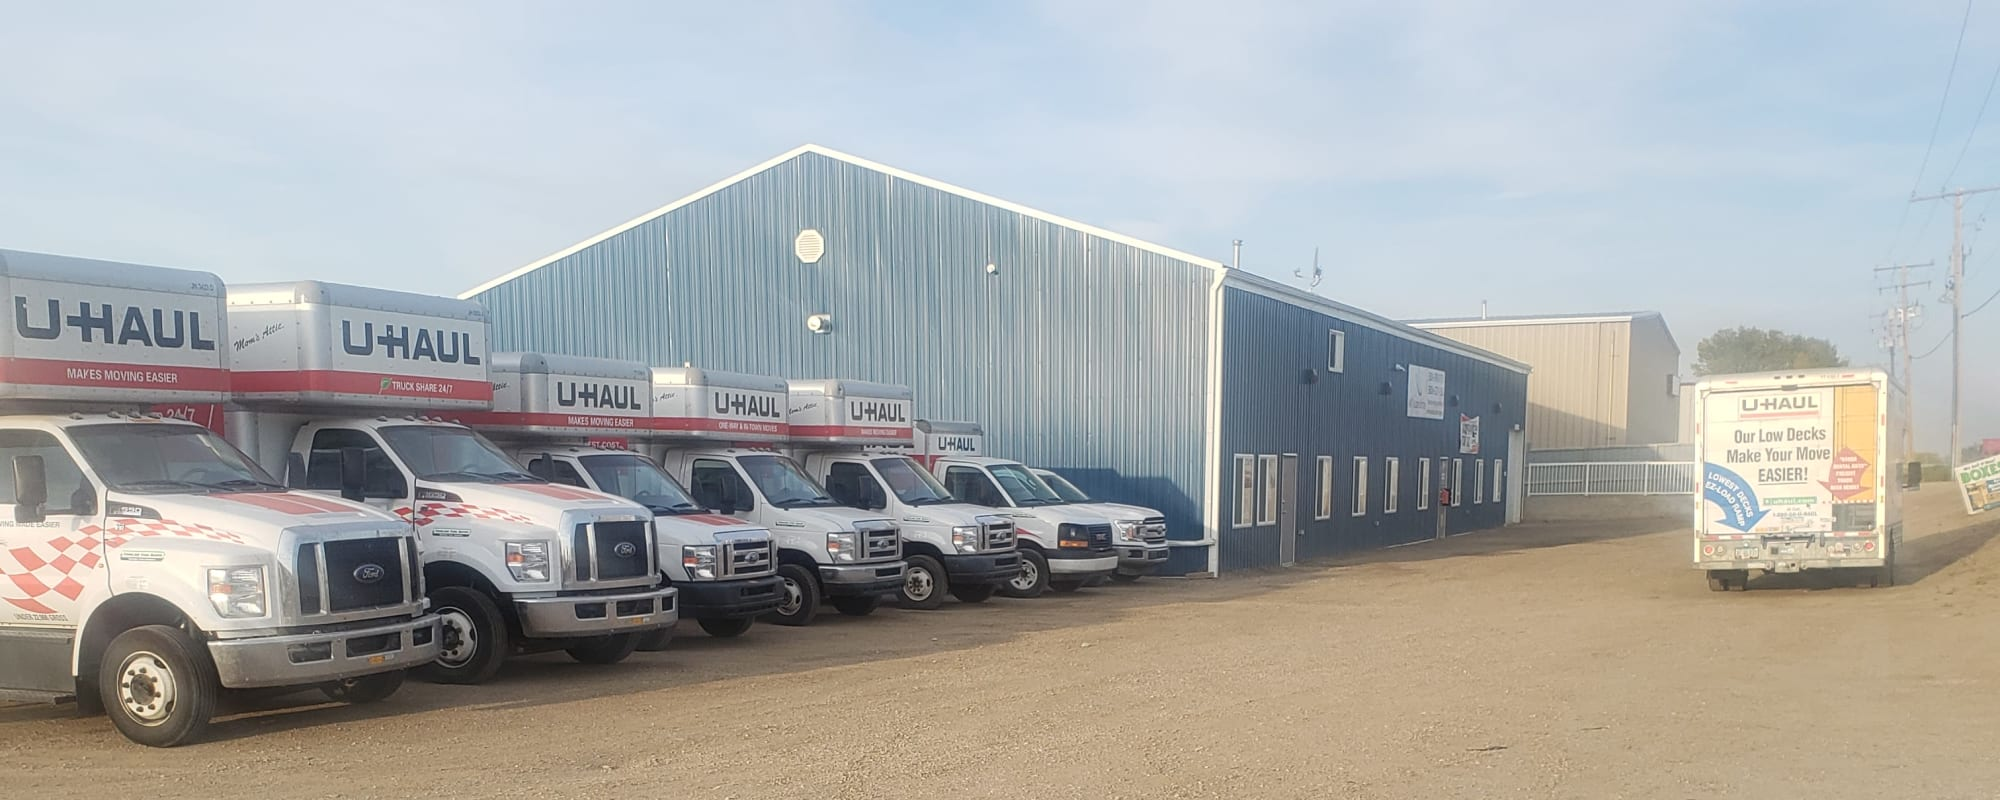 Self storage in Moose Jaw SK with Uhaul trucks and state of the art security